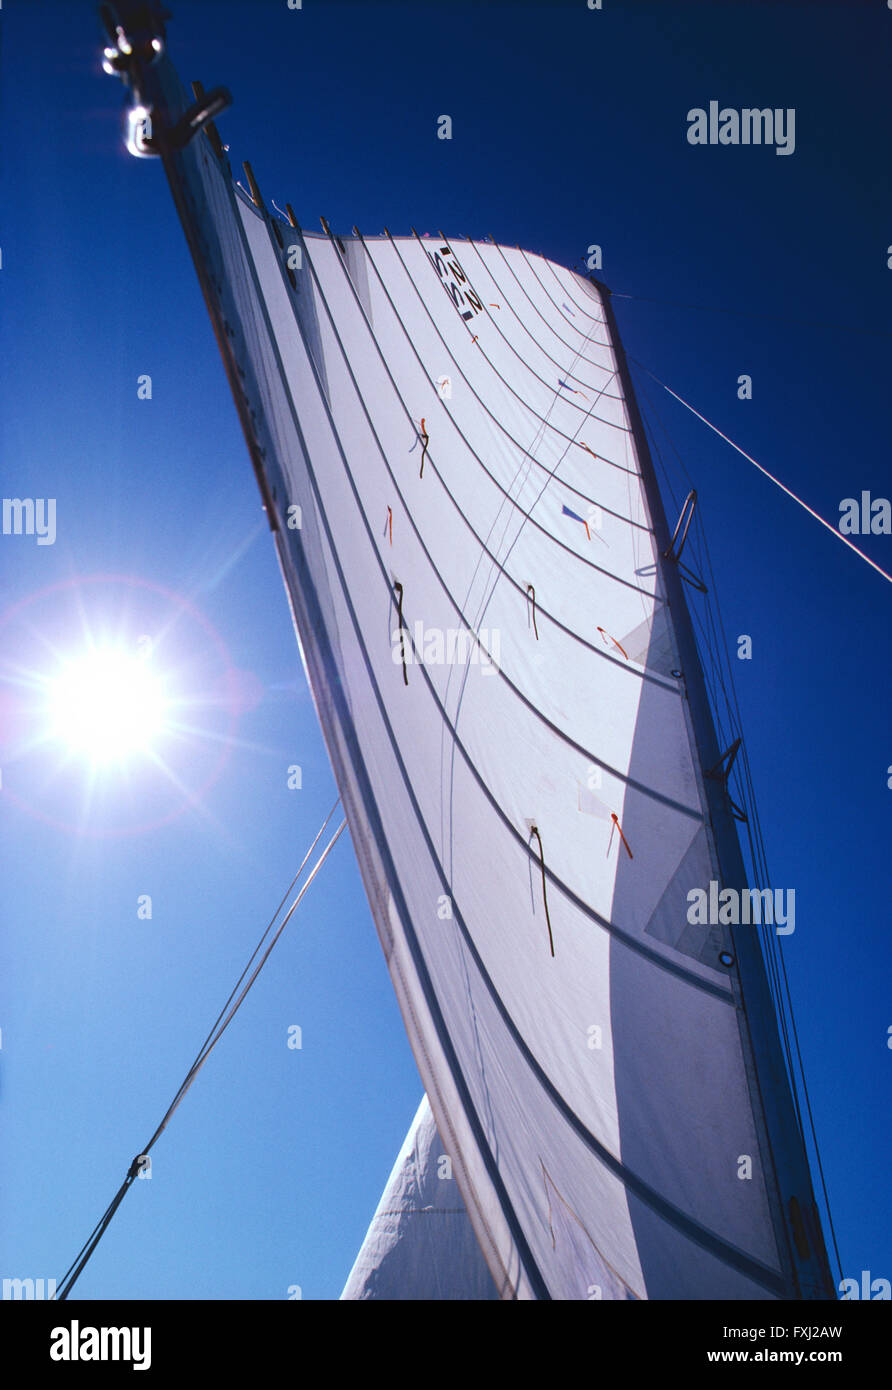 Upward view of main sail on catamaran sailboat; Gulf of Mexico; near Sarasota; Florida; USA - Stock Image